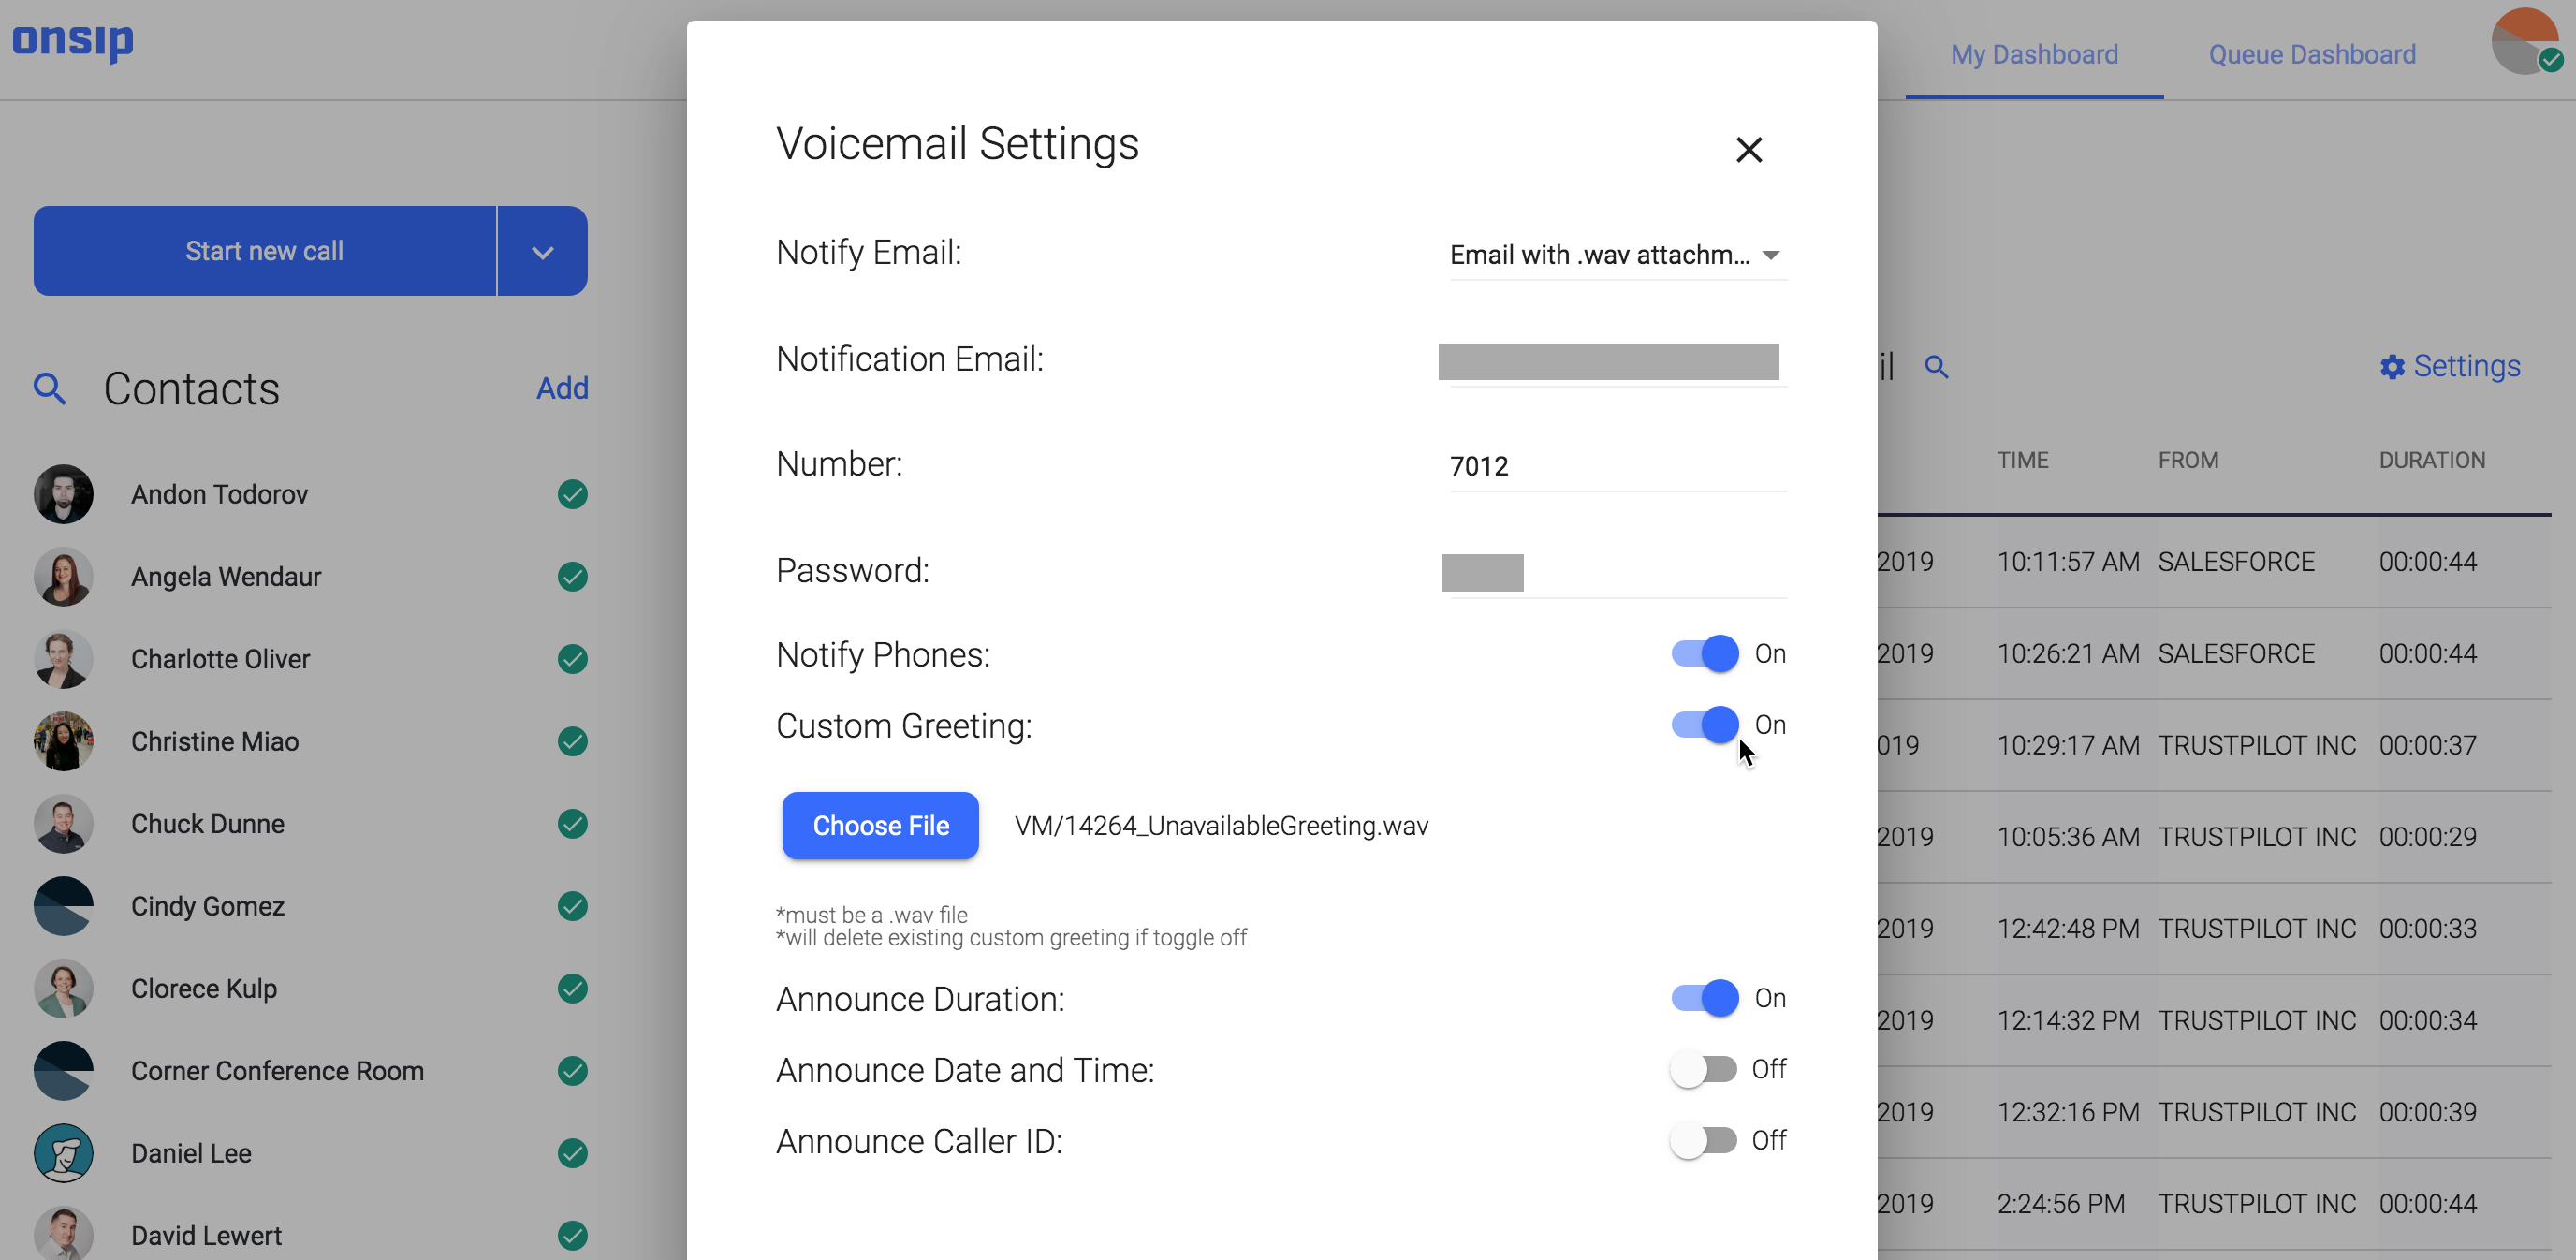 onsip voicemail